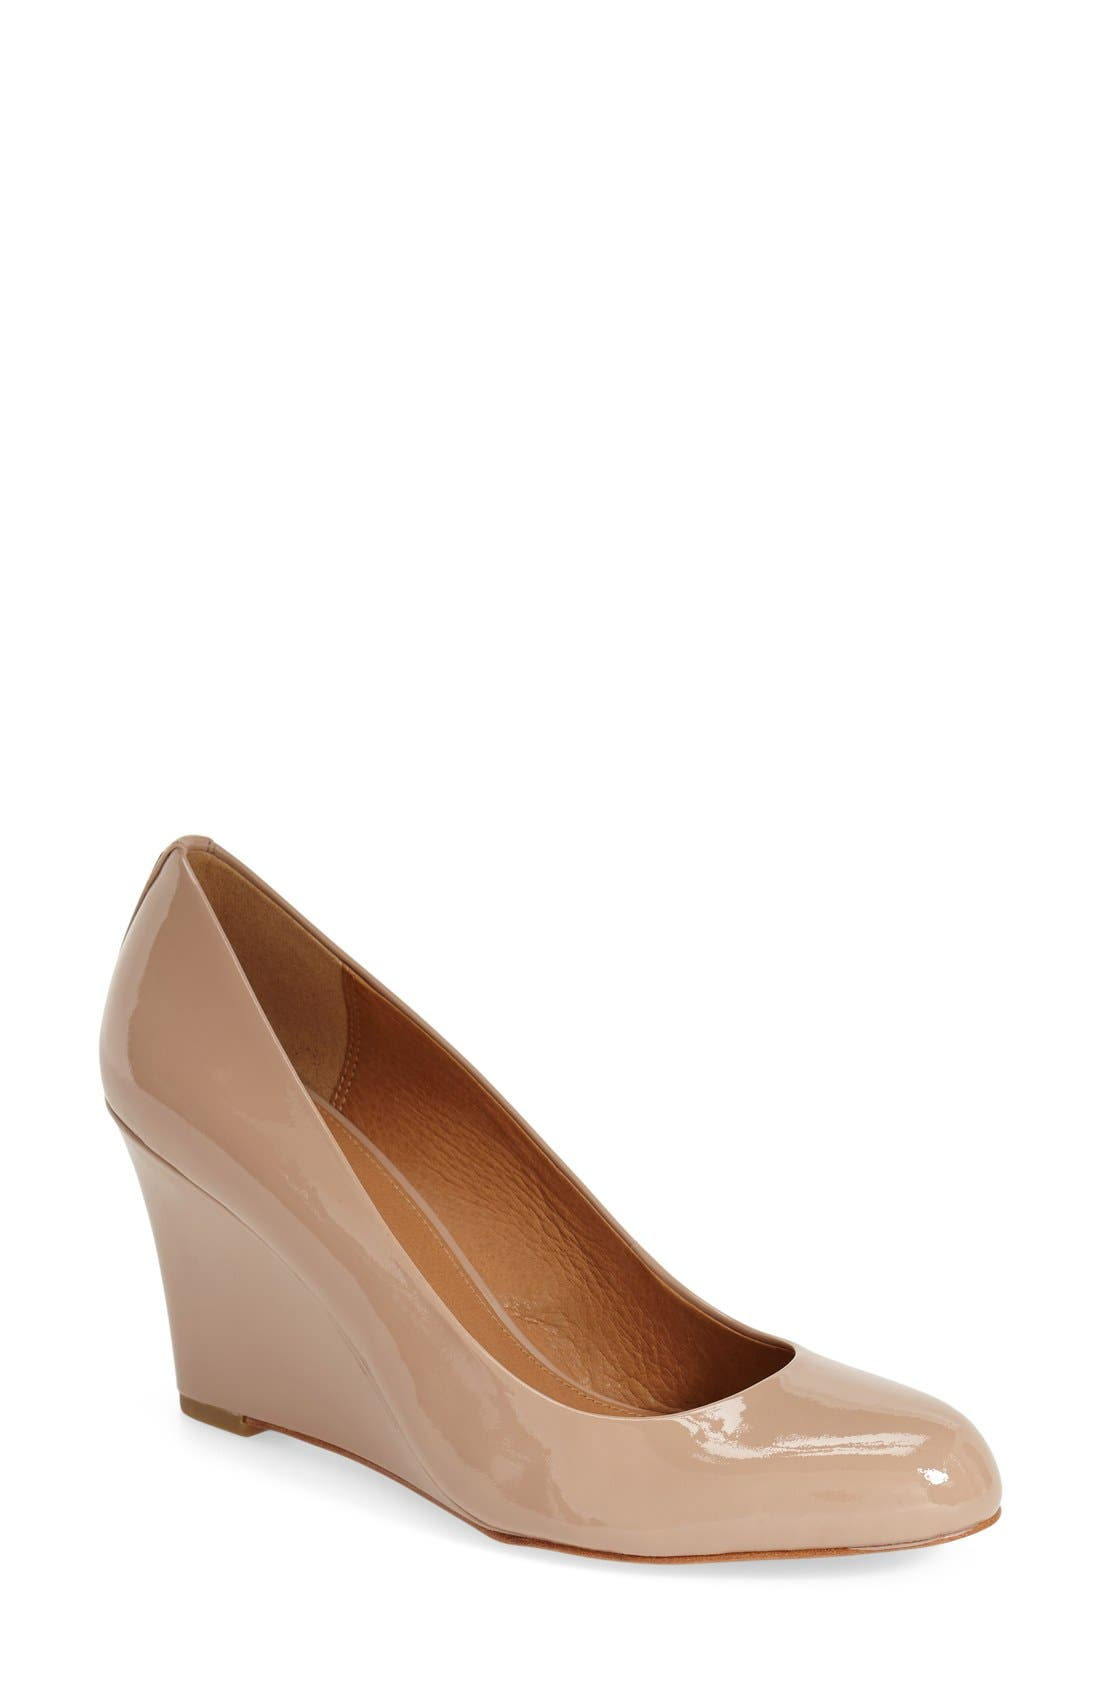 Main Image - COACH 'Rileigh' Wedge Pump (Women)